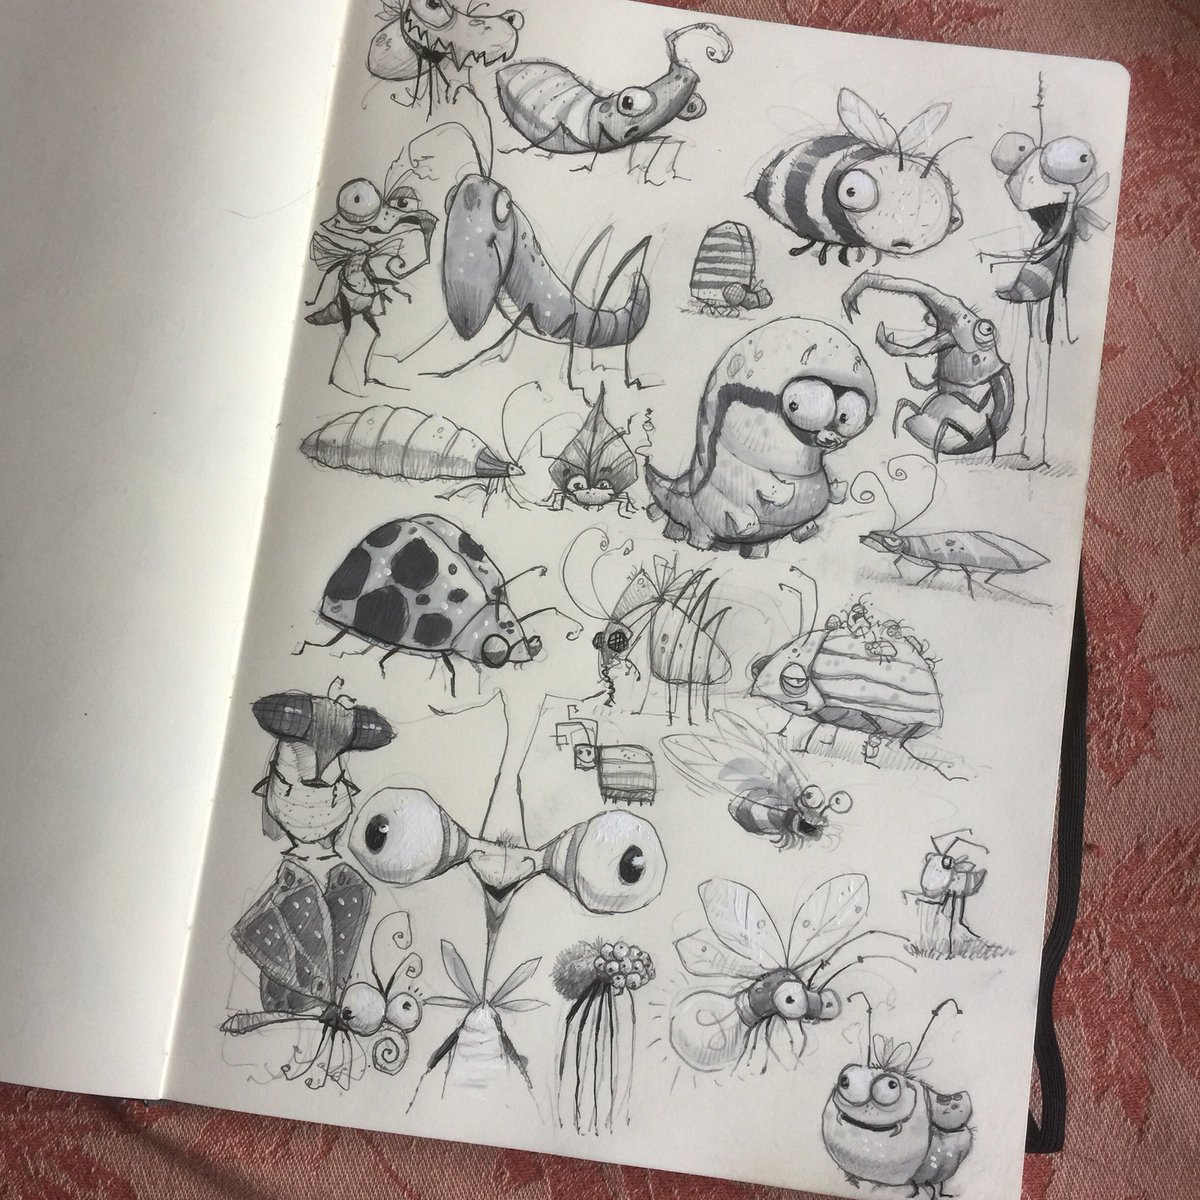 A page of bugs because, well, I dunno. I guess I like bugs. #bugs #insects #kidlitart #illustrations #sketchbook #childrensillustration #childrensbooks #characterdesign #instaartist #studies<br>http://pic.twitter.com/SdieKRaitA